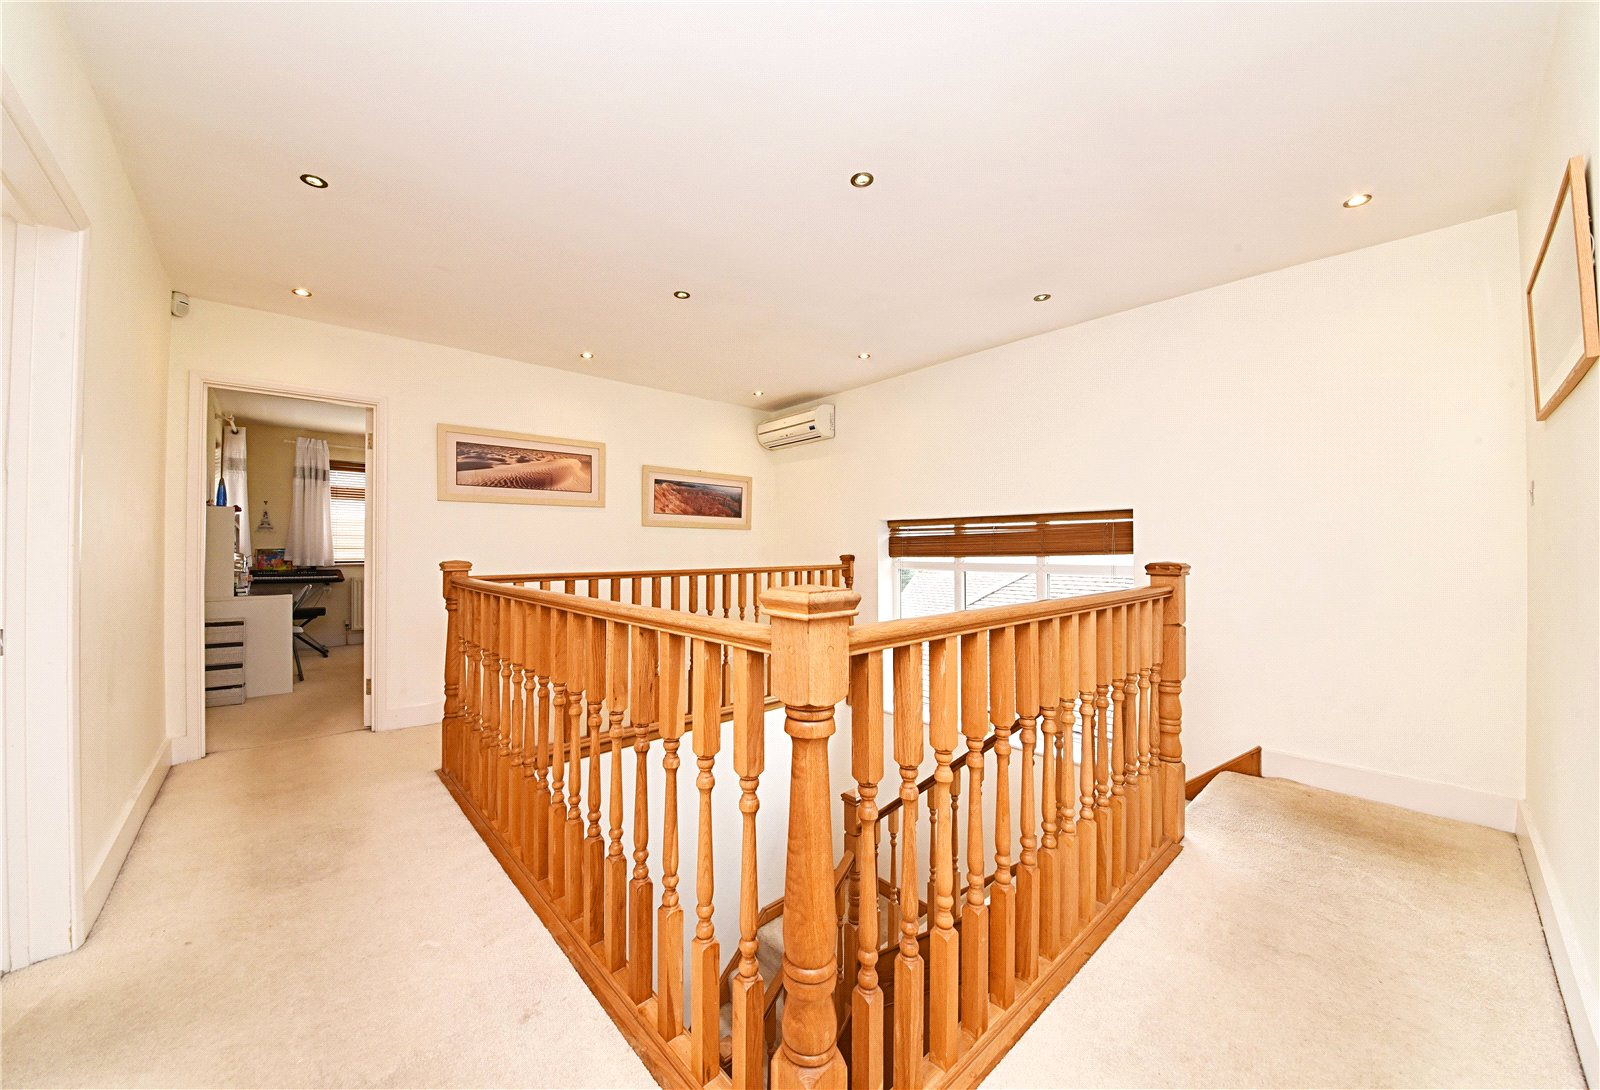 4 bed house for sale in Stanmore, HA7 3AZ  - Property Image 14